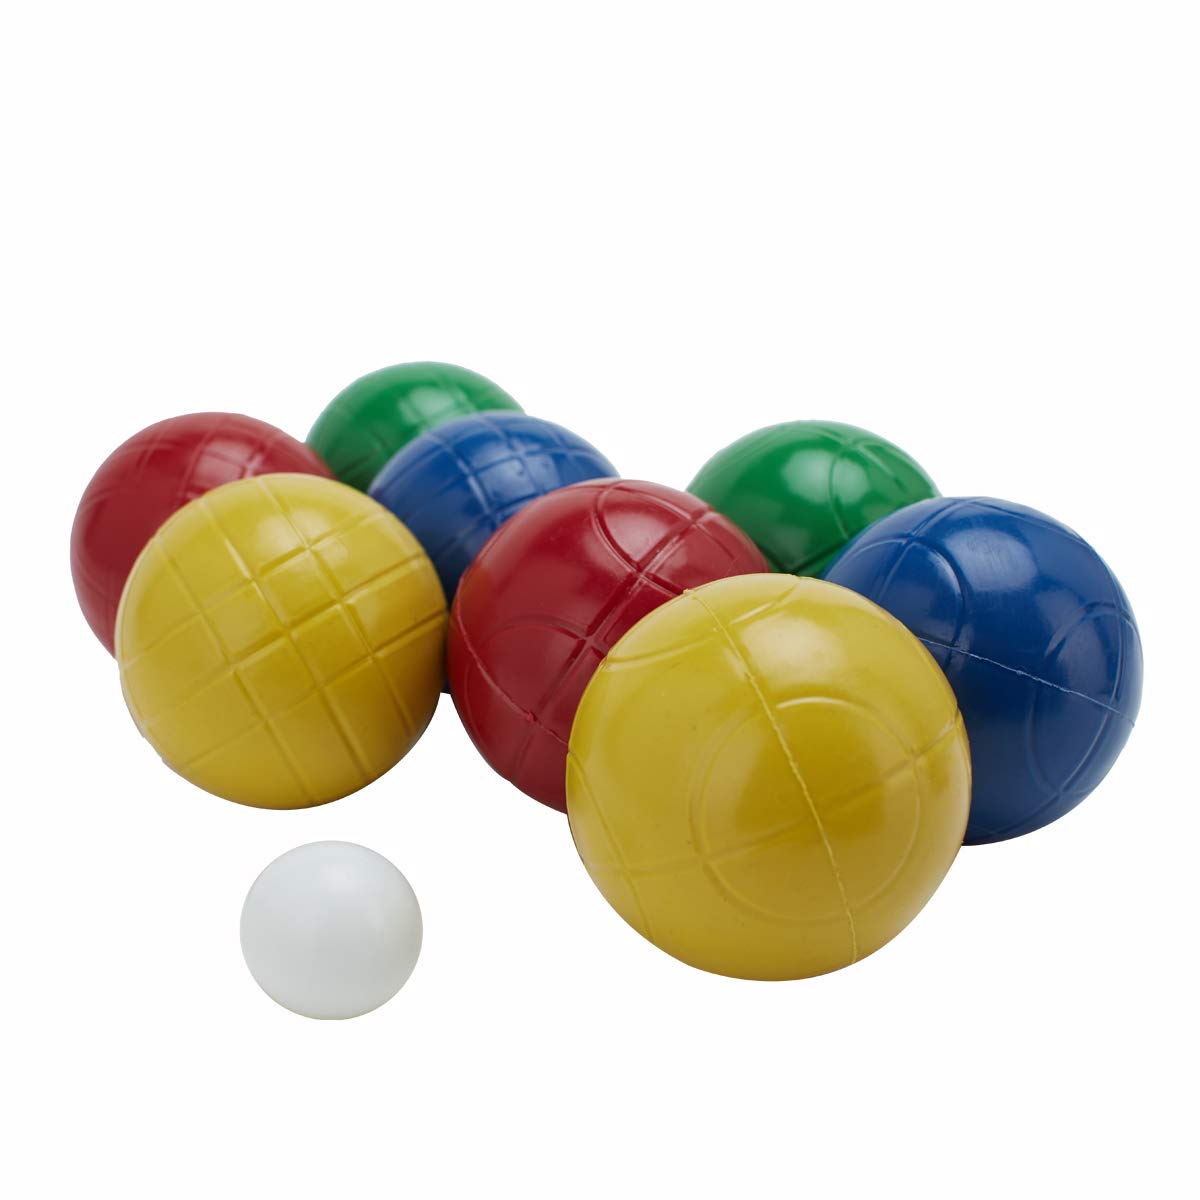 LAWN TIME 90mm Bocce Ball Set | Includes 8 Recreational Plastic Balls, 1 Pallino (Jack Ball) and 1 Nylon Zip-Up Carrying Case | Beach, Backyard or Outdoor Party Game - Family Fun for All Ages by LAWN TIME (Image #7)